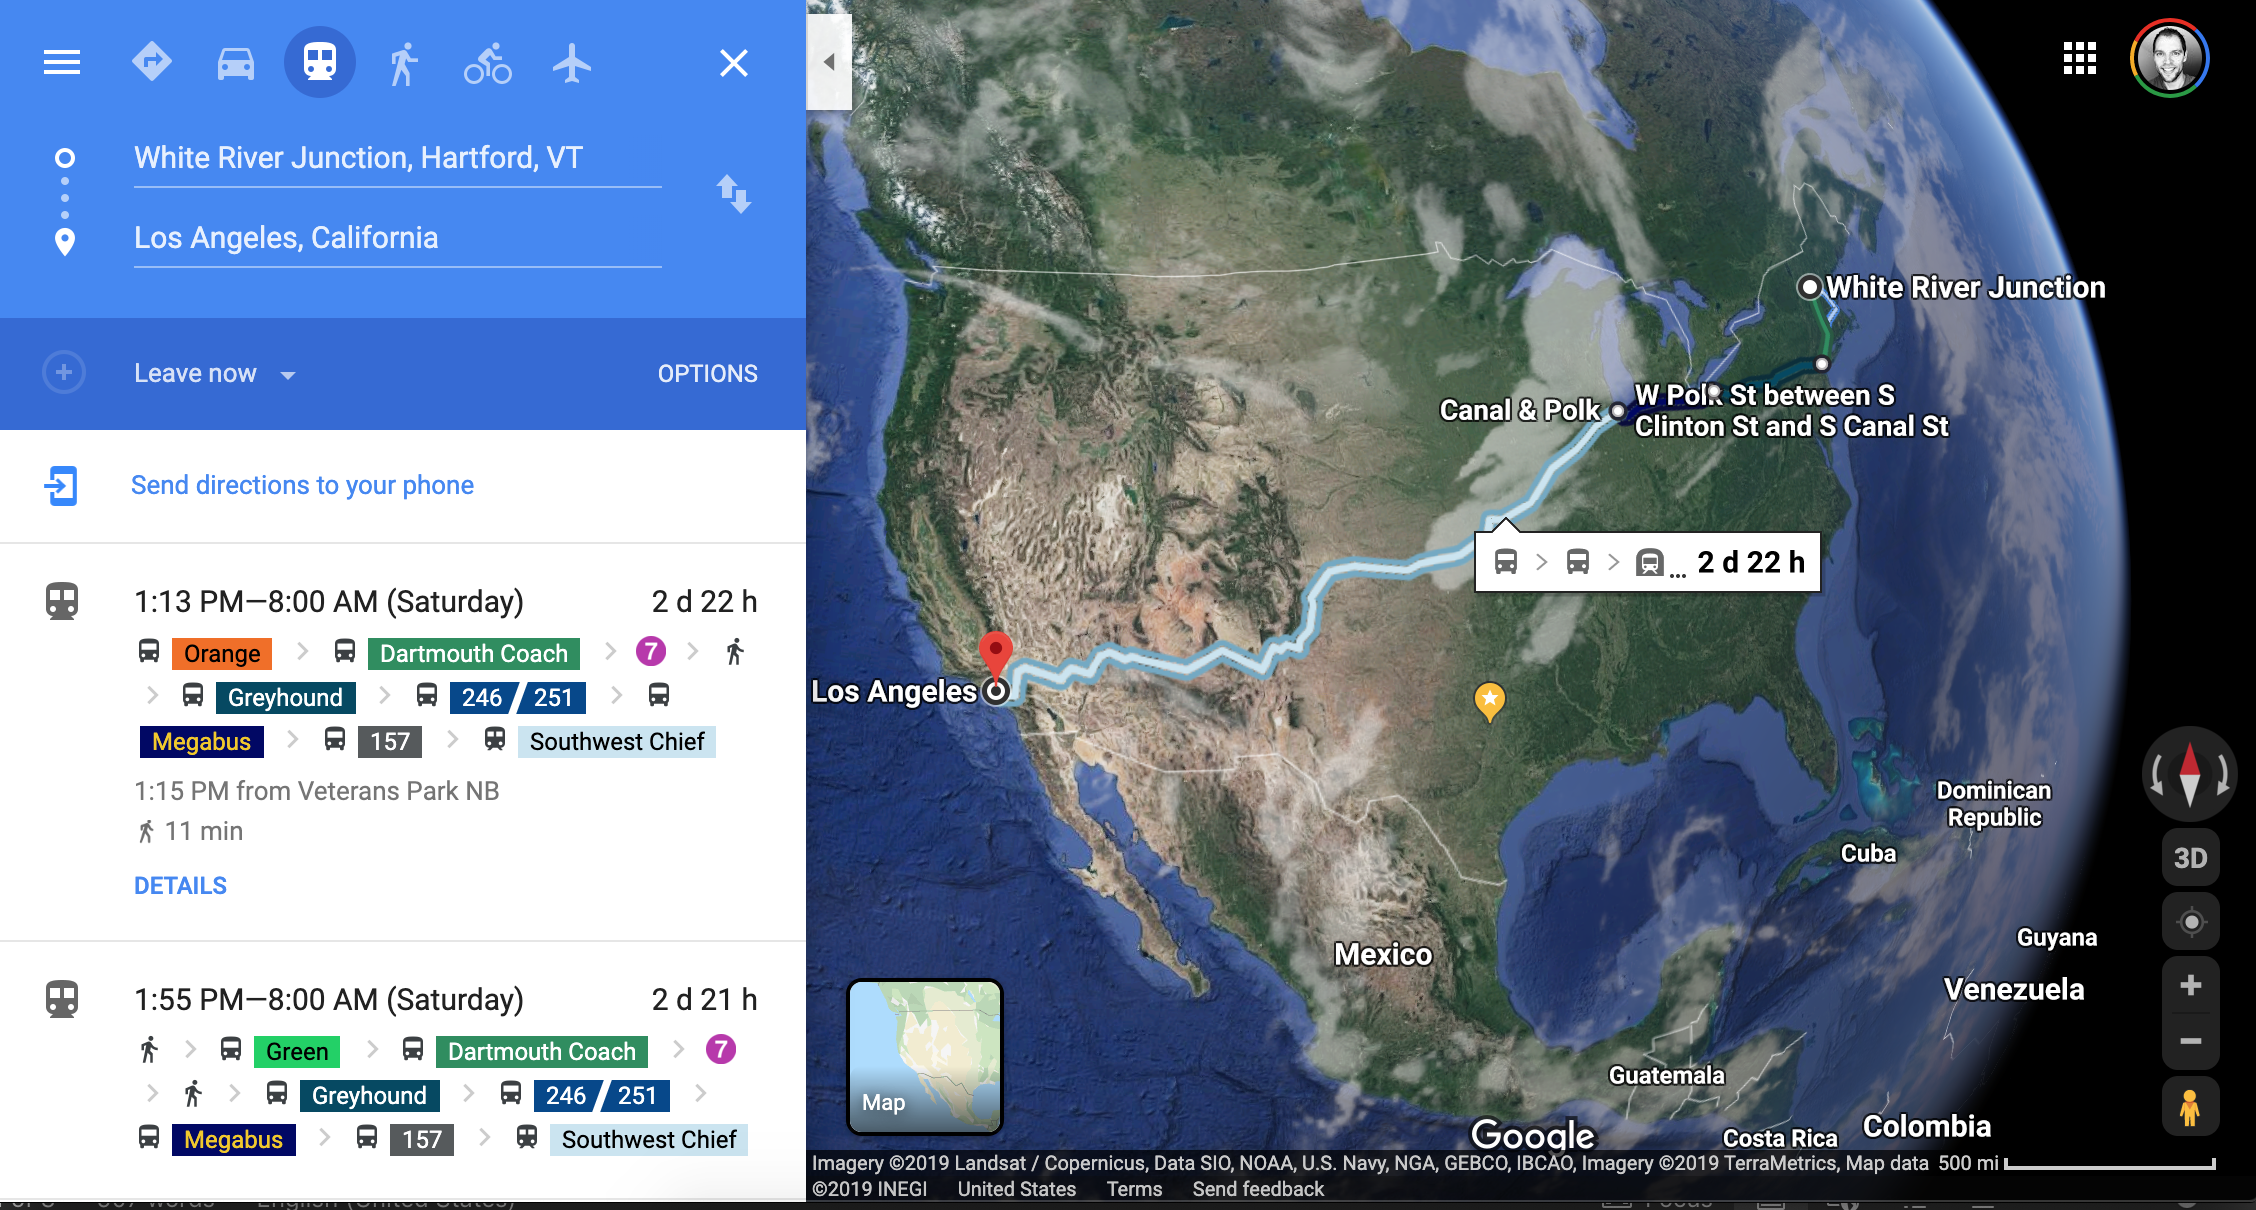 Google Maps result for taking public transportation from White River Junction, VT, to Los Angeles, CA